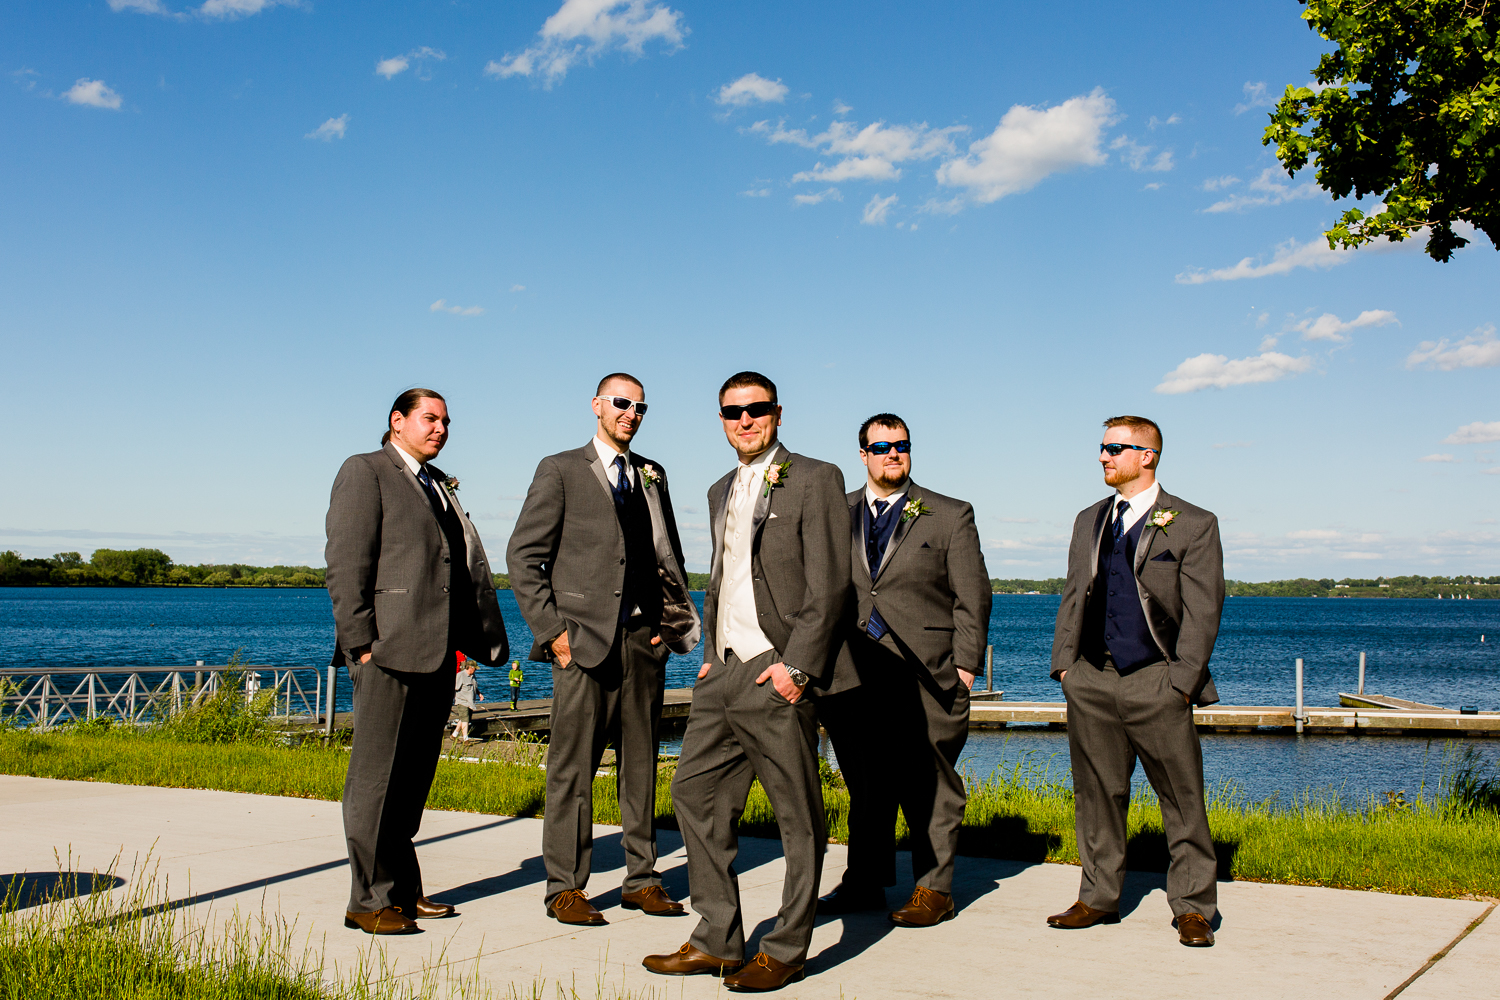 The groom and groomsmen have their backs to a lake. They are wearing sunglasses. There are clouds in the sky.